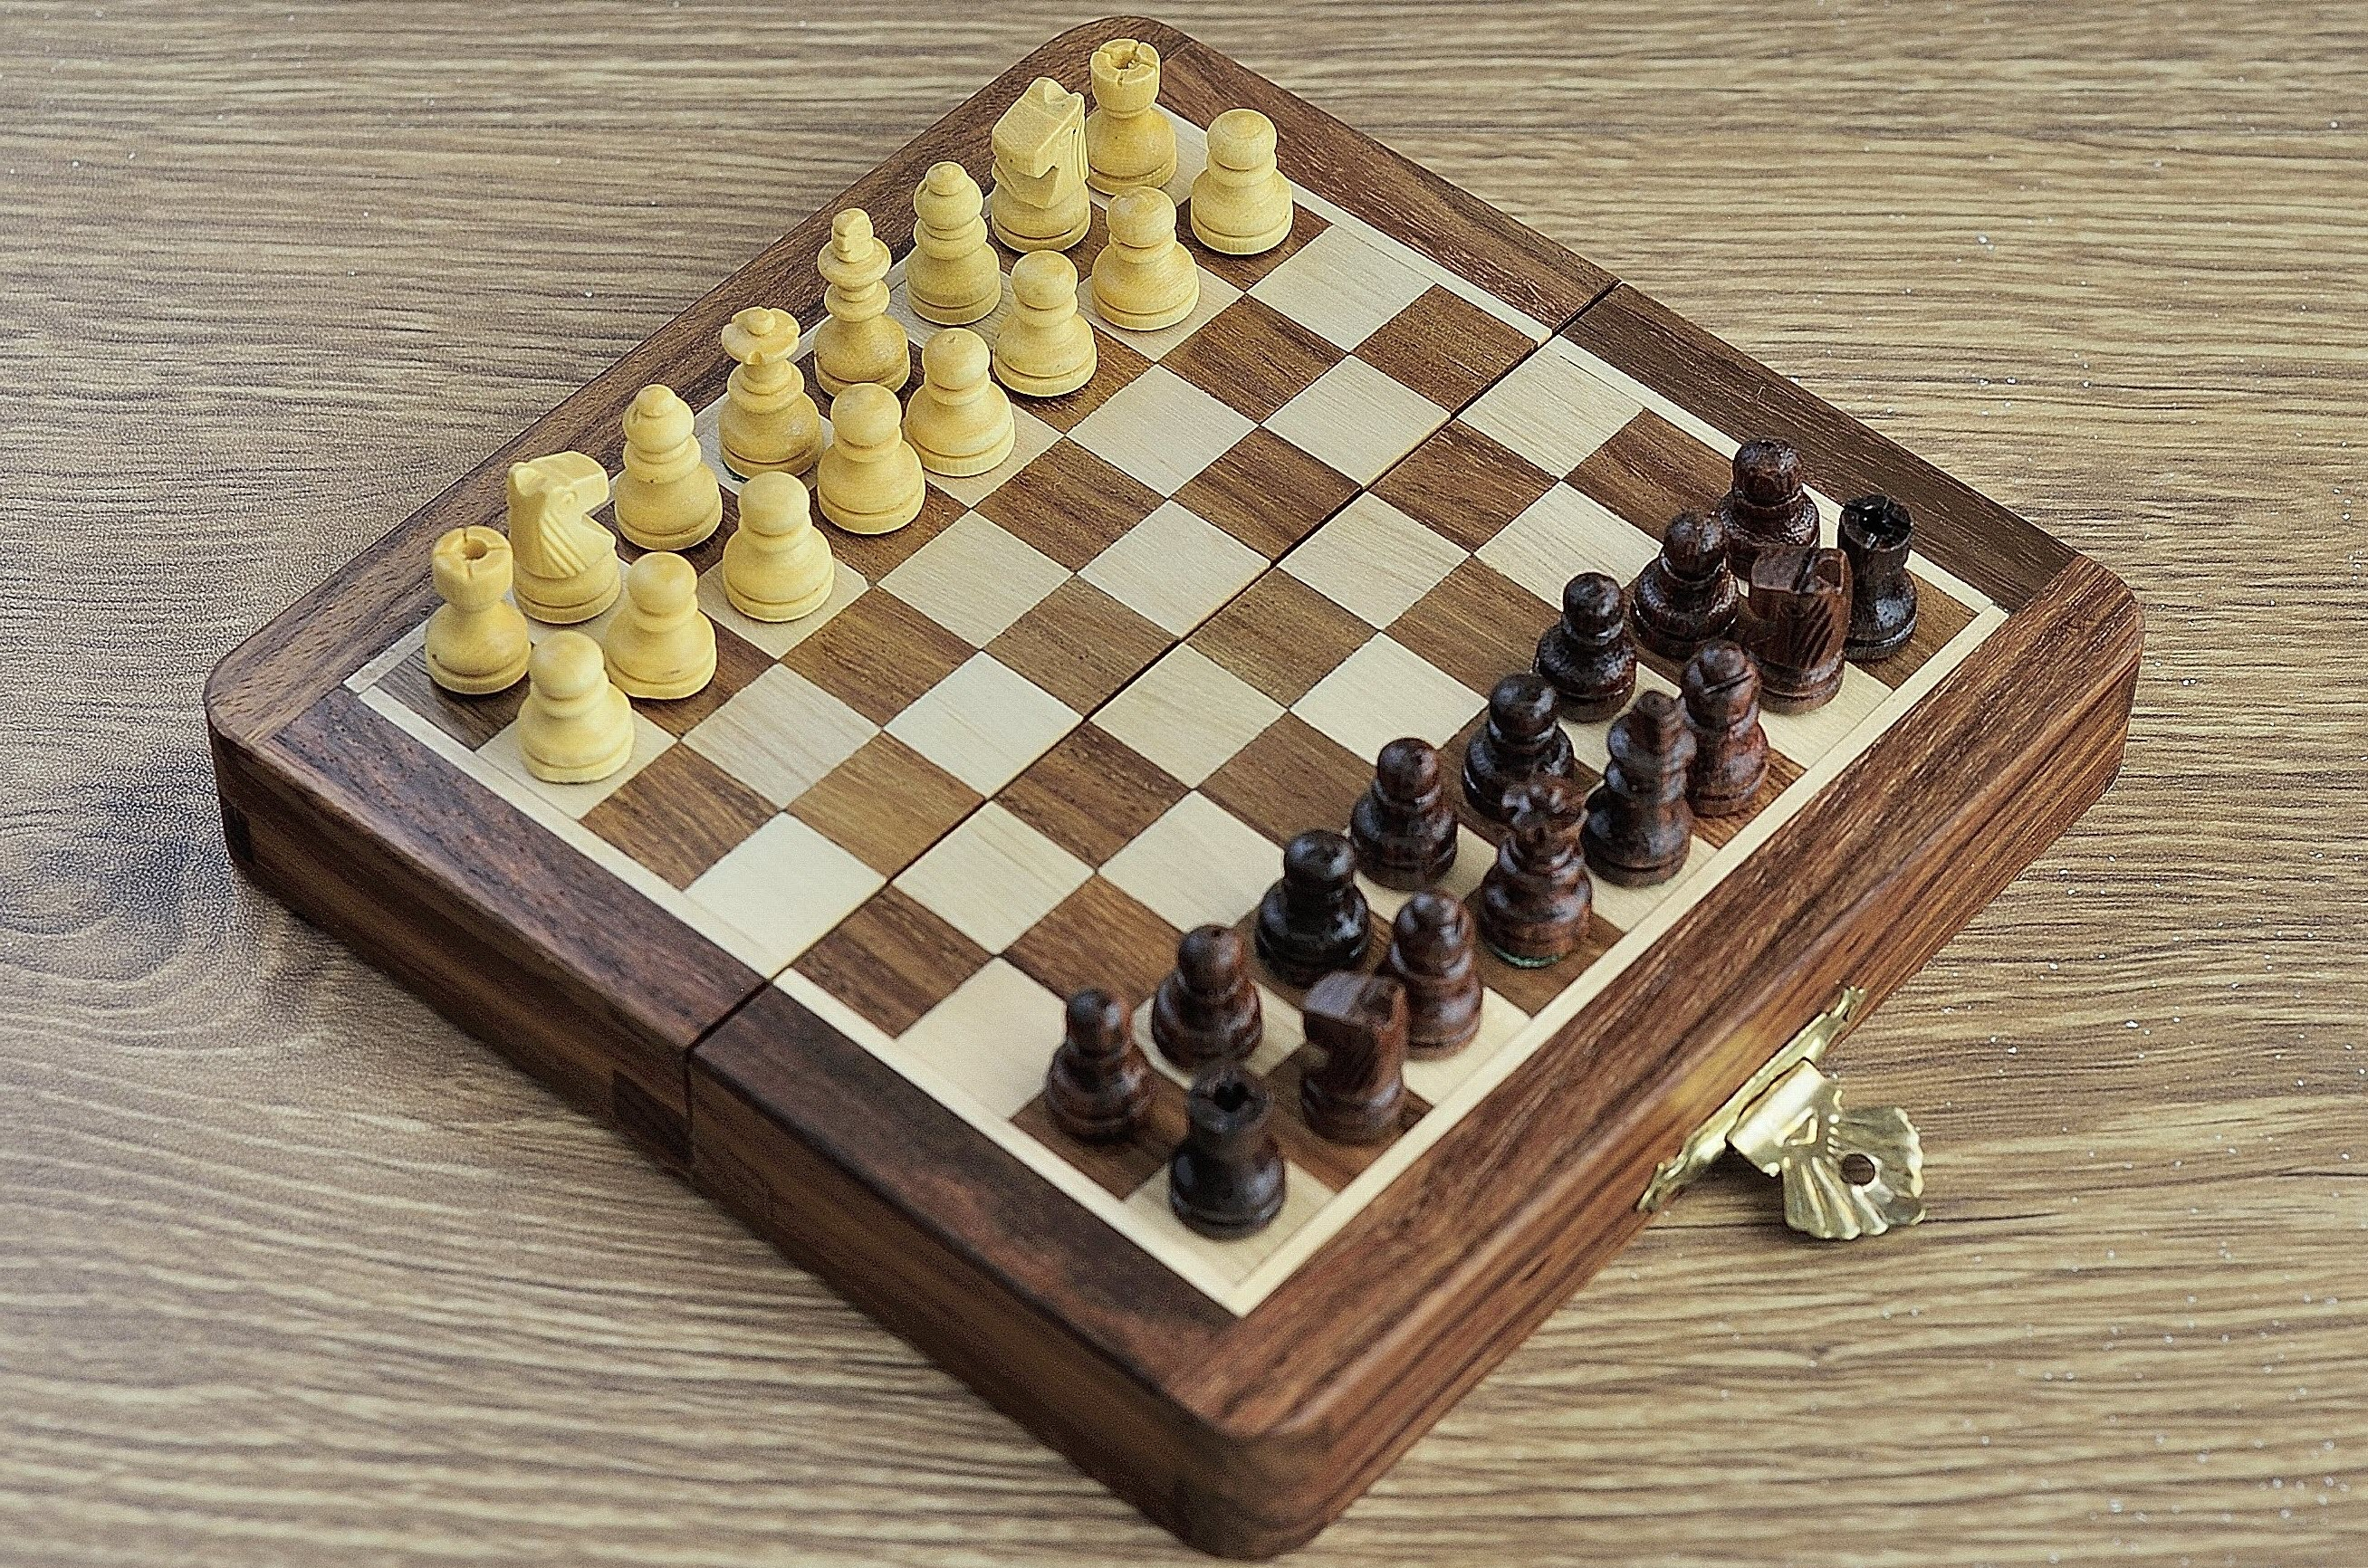 Pocket Chess Sets